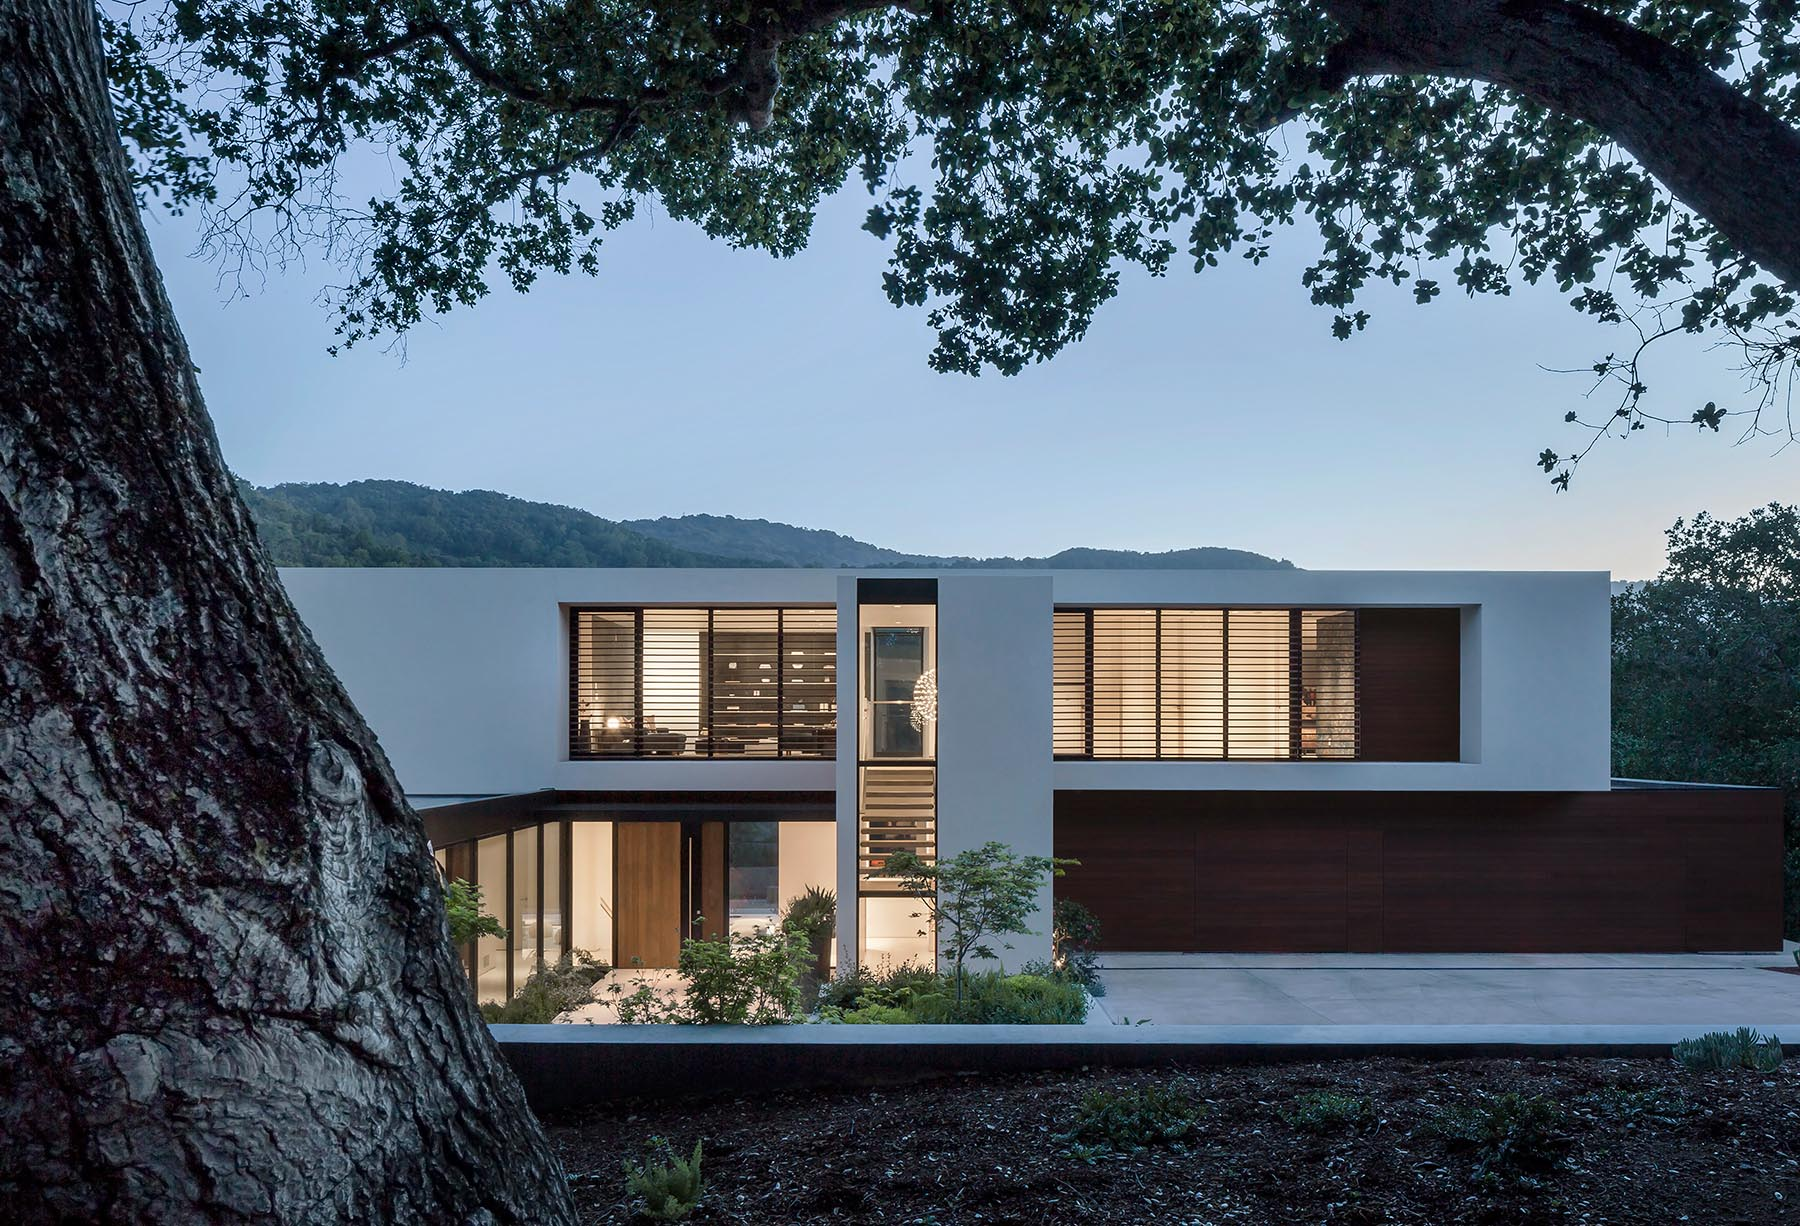 An angular and modern home design with a white exterior and wood accents.